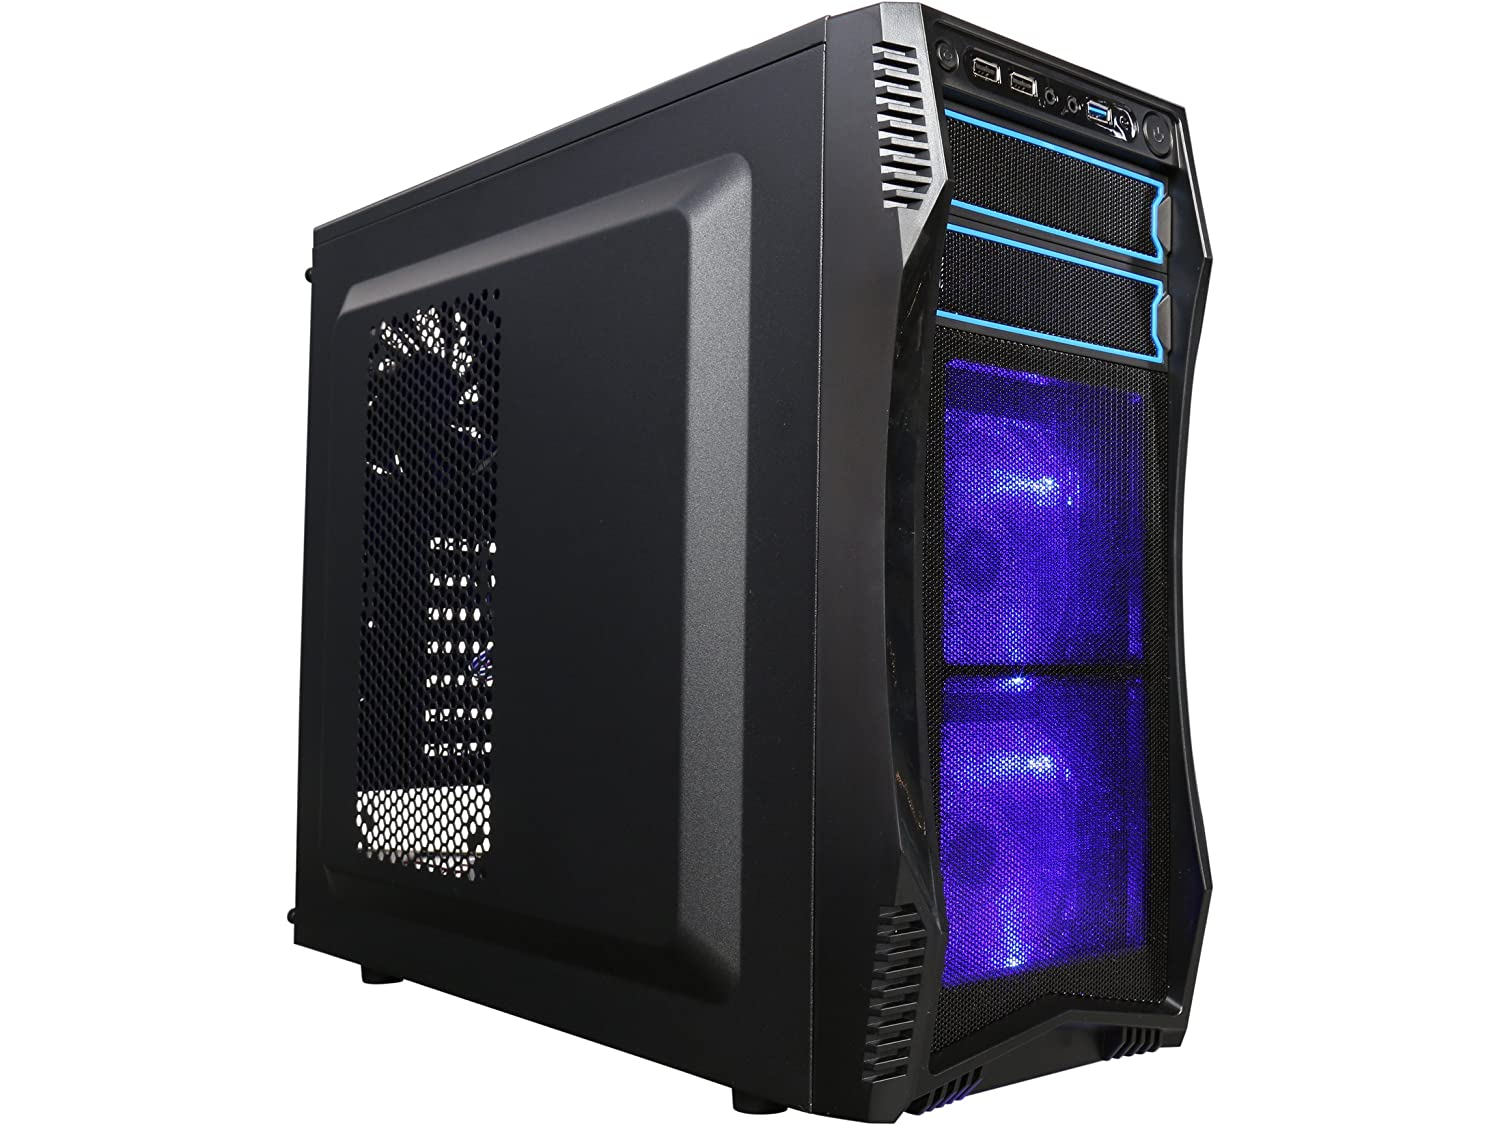 Best Tower Fan 2020 Top 10 Best Mini Gaming PC Towers on the Market 2019 2020 on